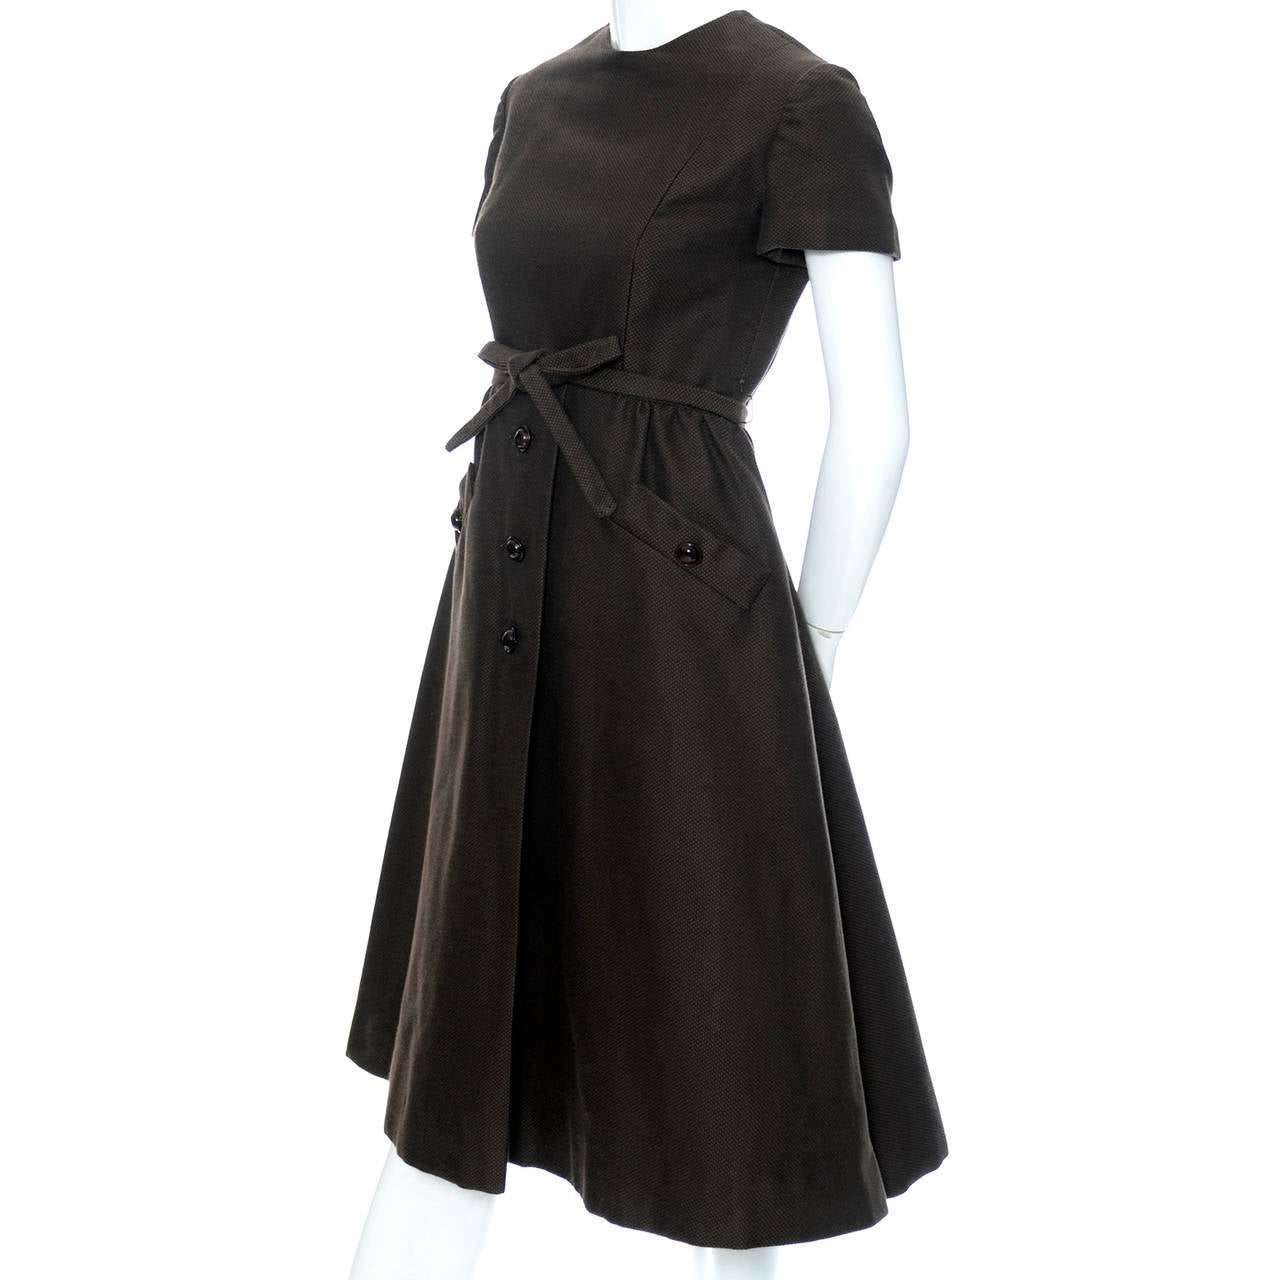 This rare vintage dress from Geoffrey Beene is from the 1960's and has decorative front buttons, a fabric belt, and great front pockets. The brown pique cotton dress has a full skirt, a back zipper and is fully lined. We love Geoffrey Beene, his